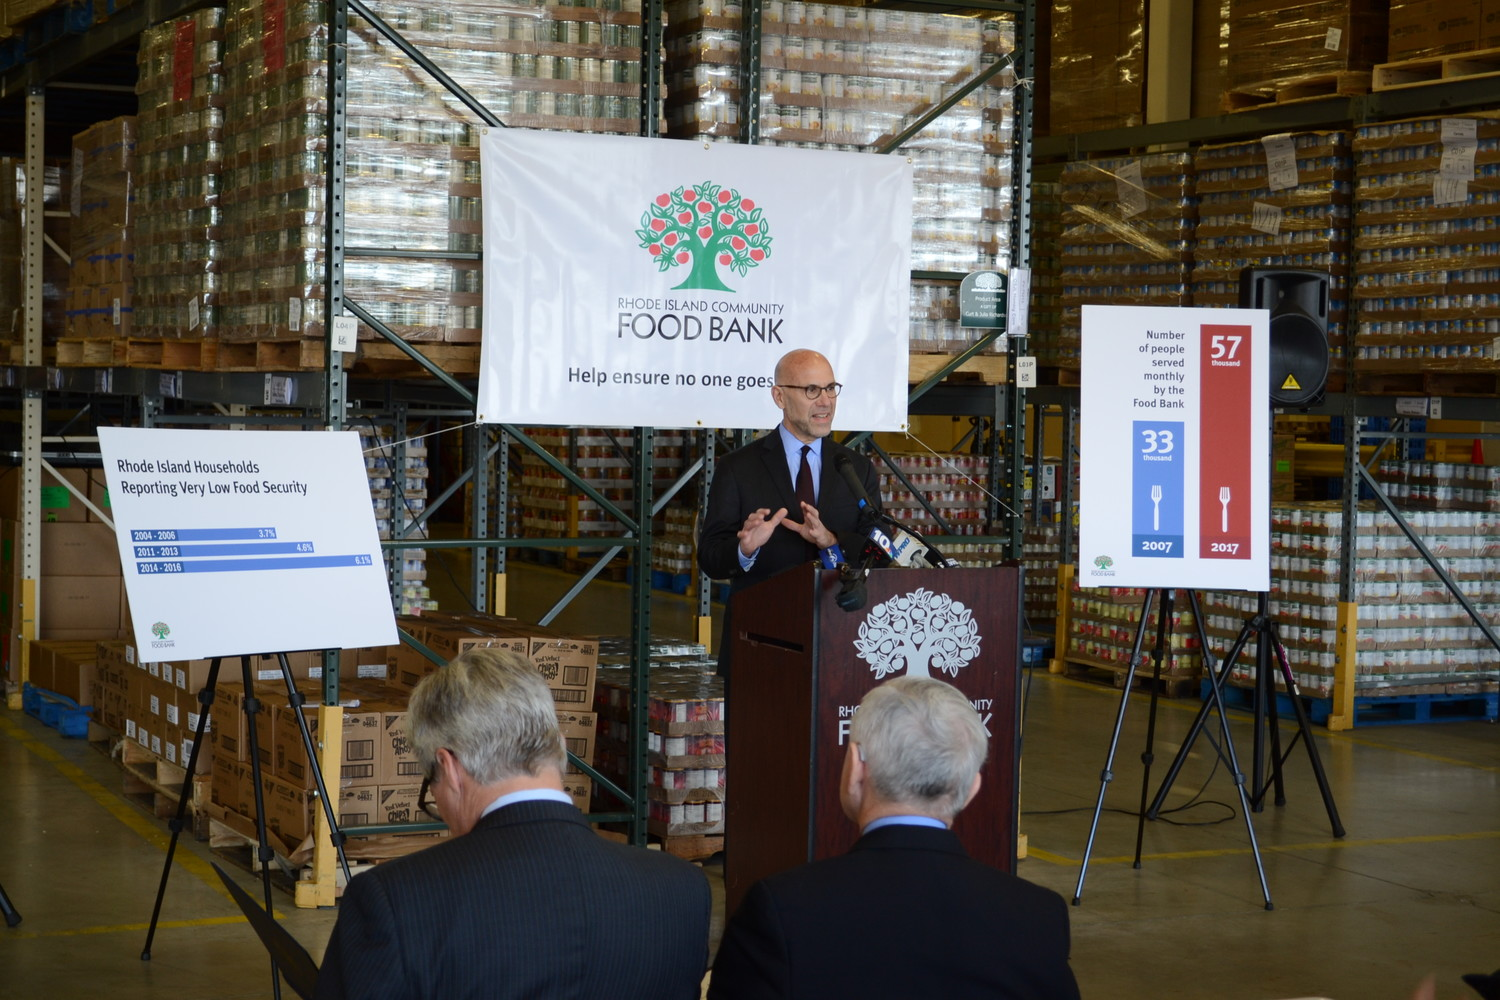 Rhode Island Community Food Bank CEO Andrew Schiff speaks at the press event announcing the bank's annual status report on hunger on Monday.